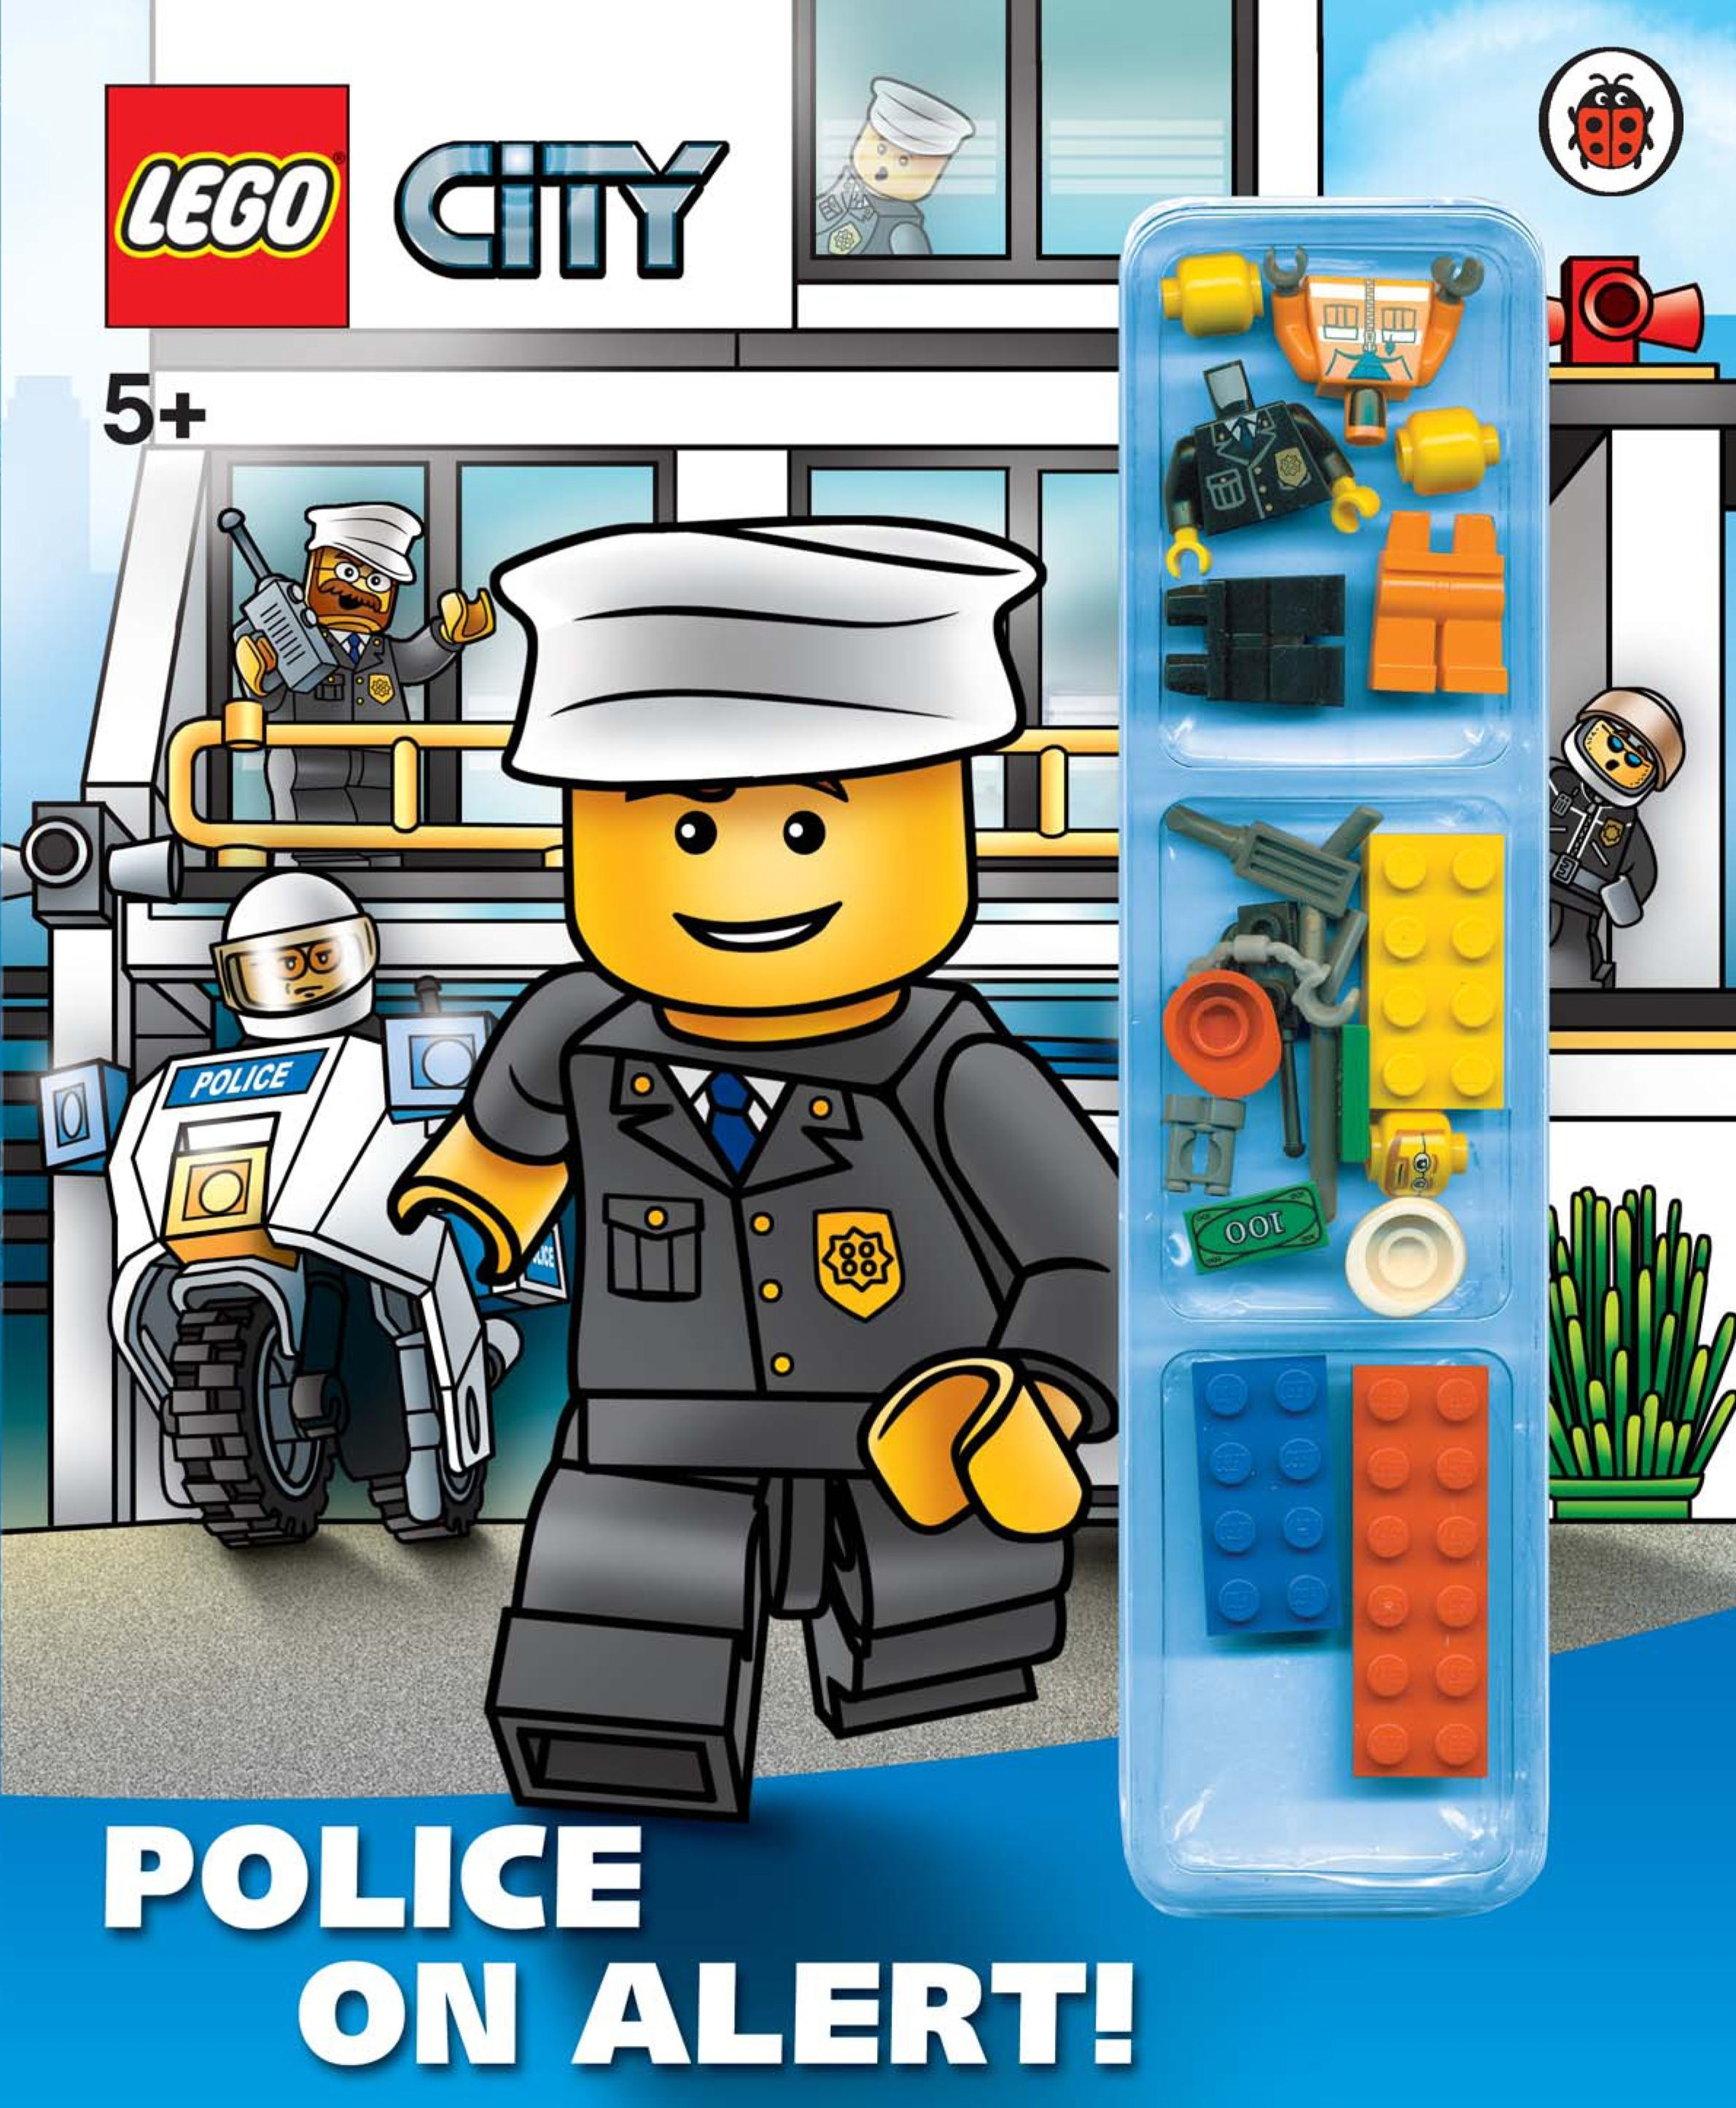 Lego City: Police on Alert!